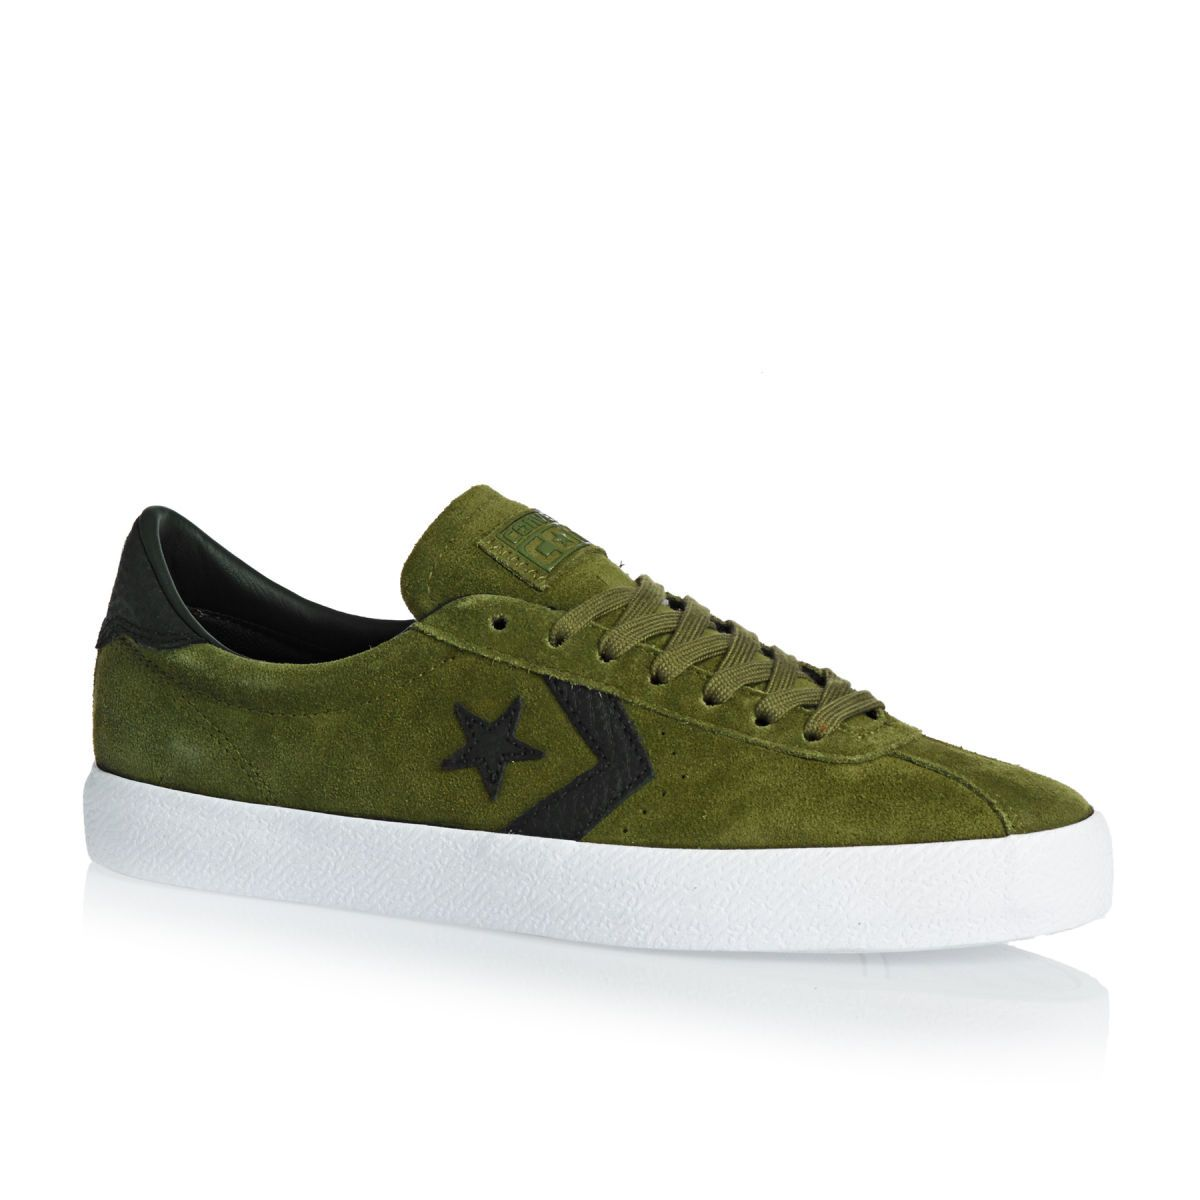 6a9af70a2 Converse Shoes - Converse Breakpoint Shoes - Imperial Green white black